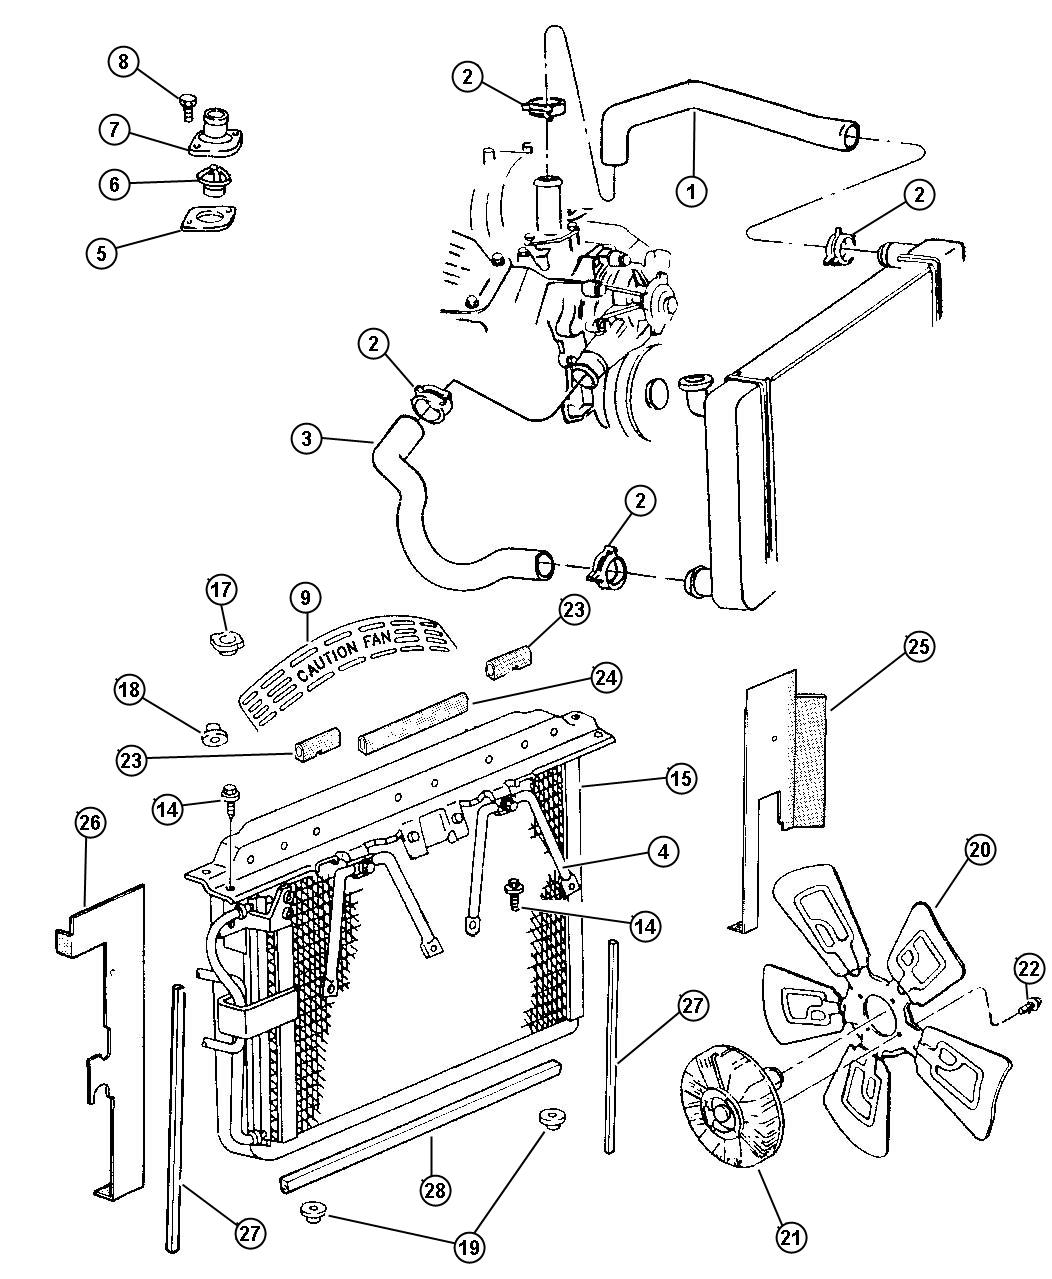 [DIAGRAM] 2000 Chrysler Concorde Radiator Fan Wiring